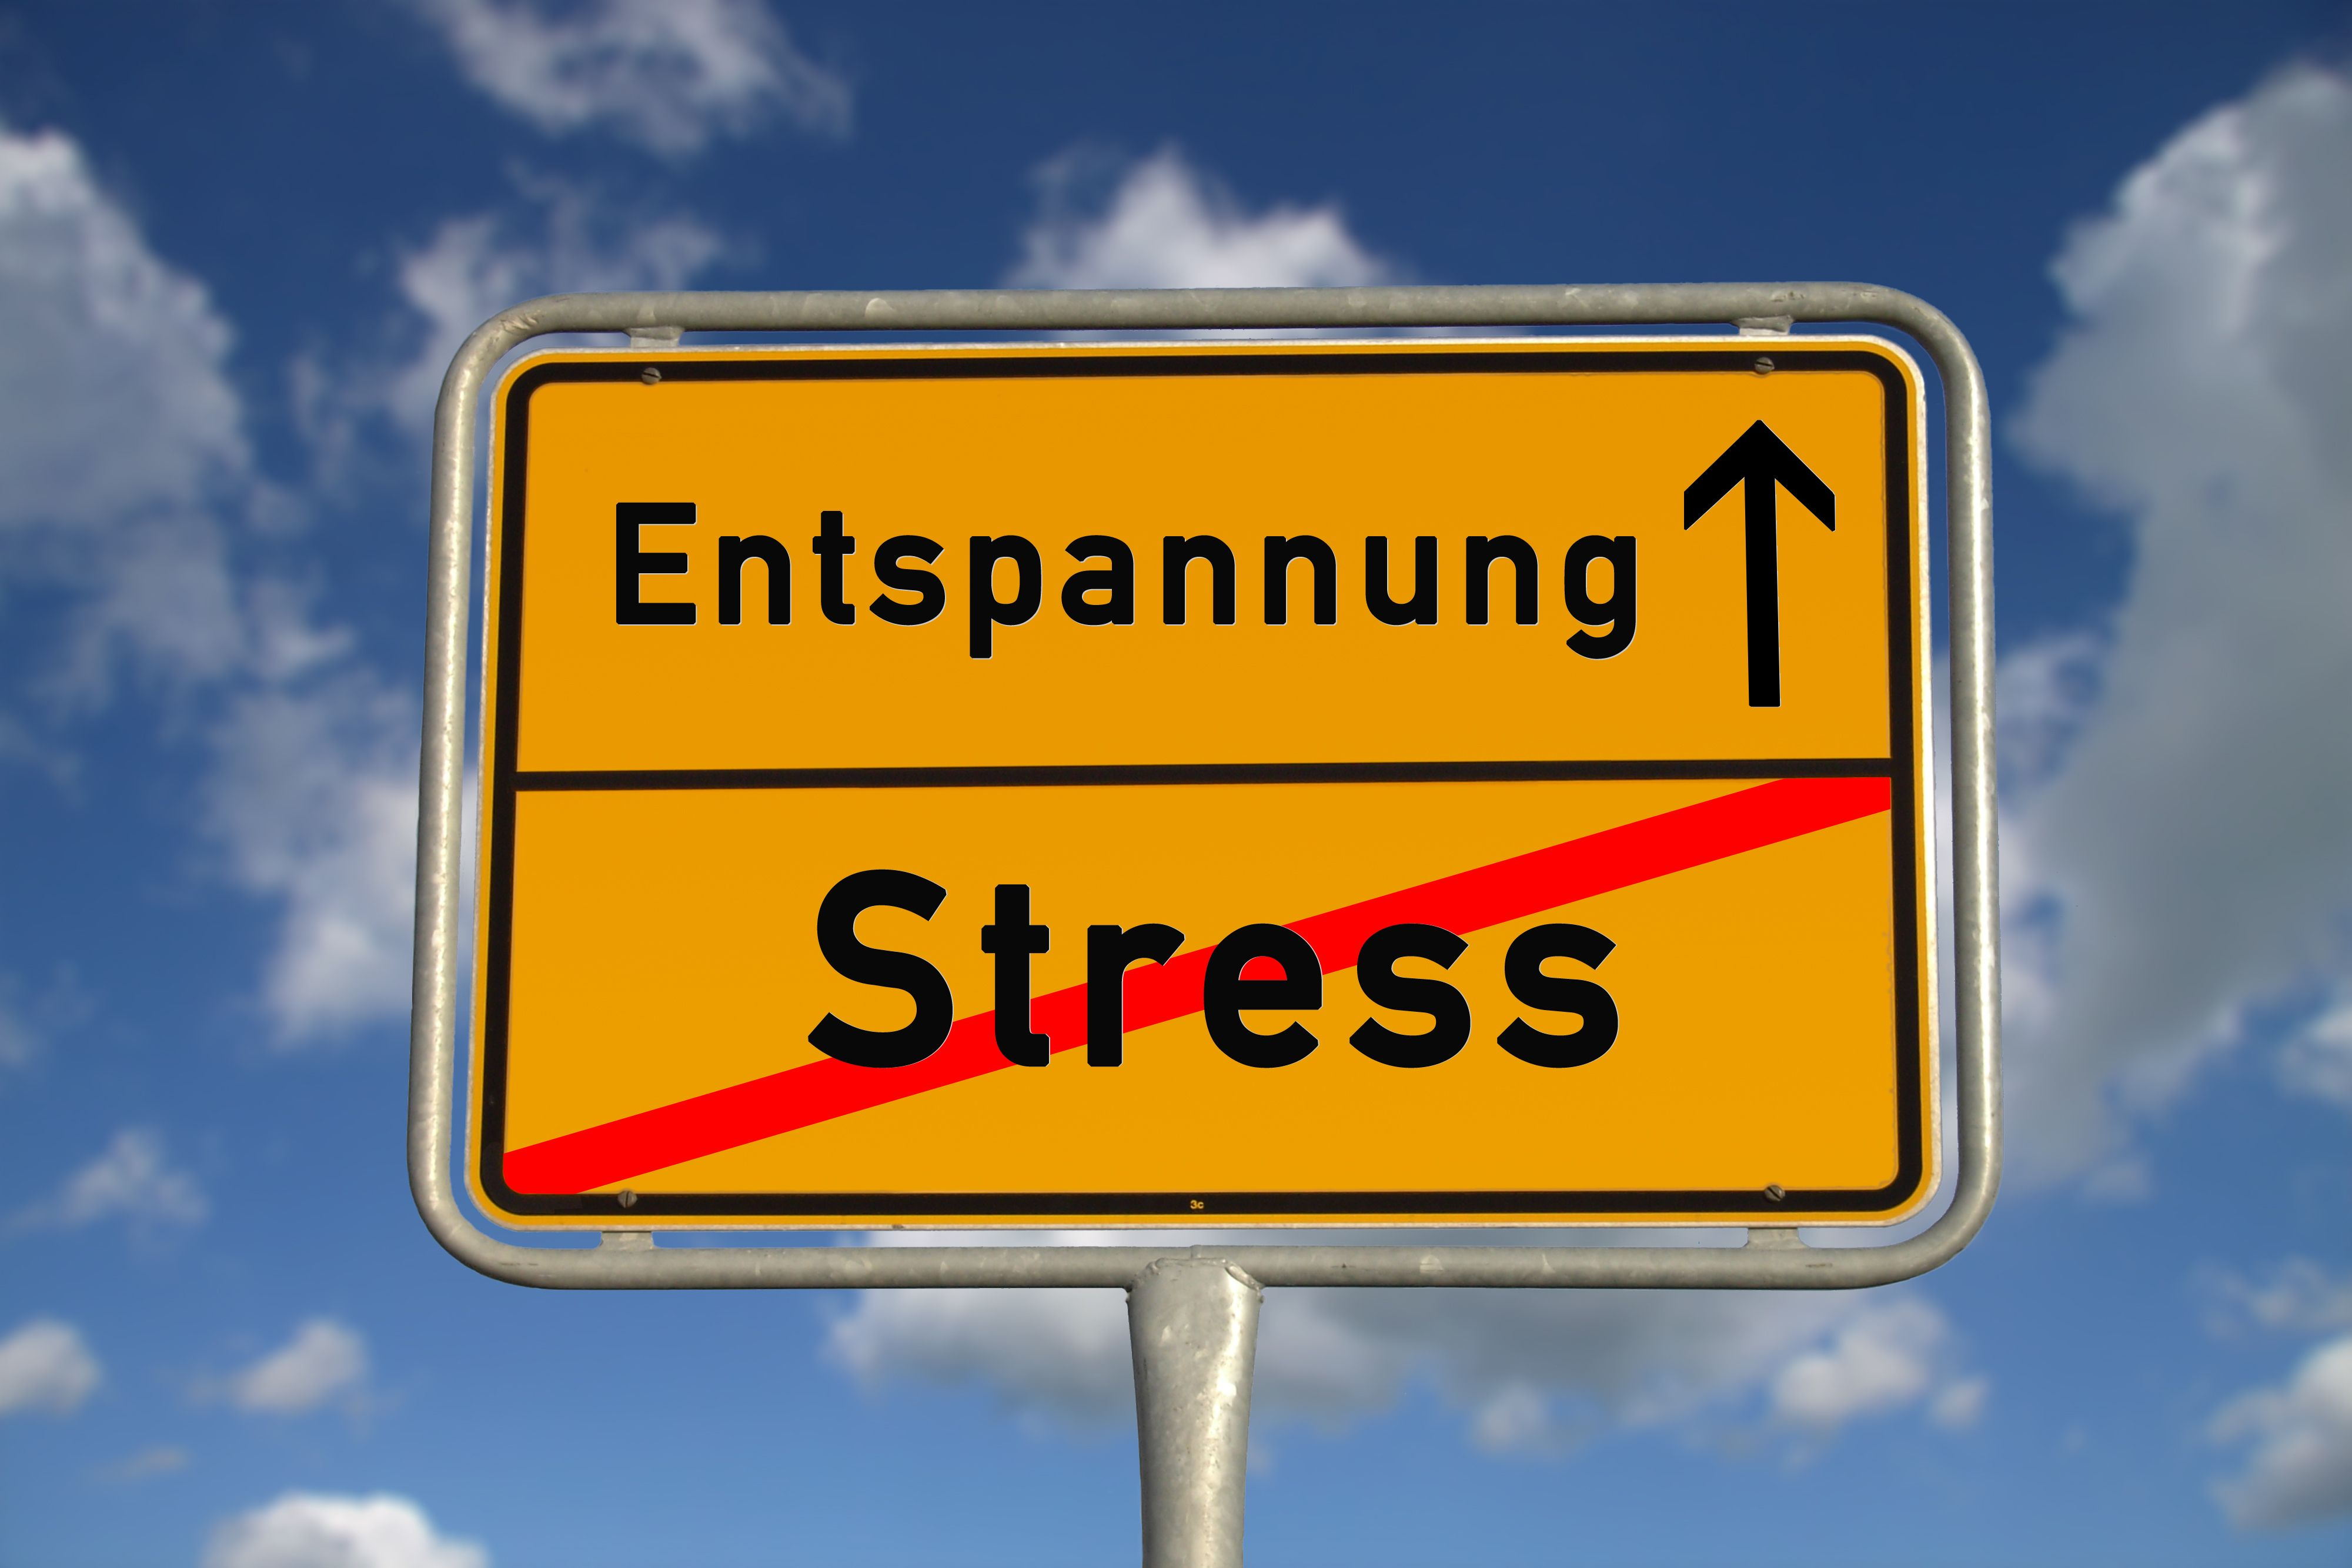 Entspannung = Relaxation